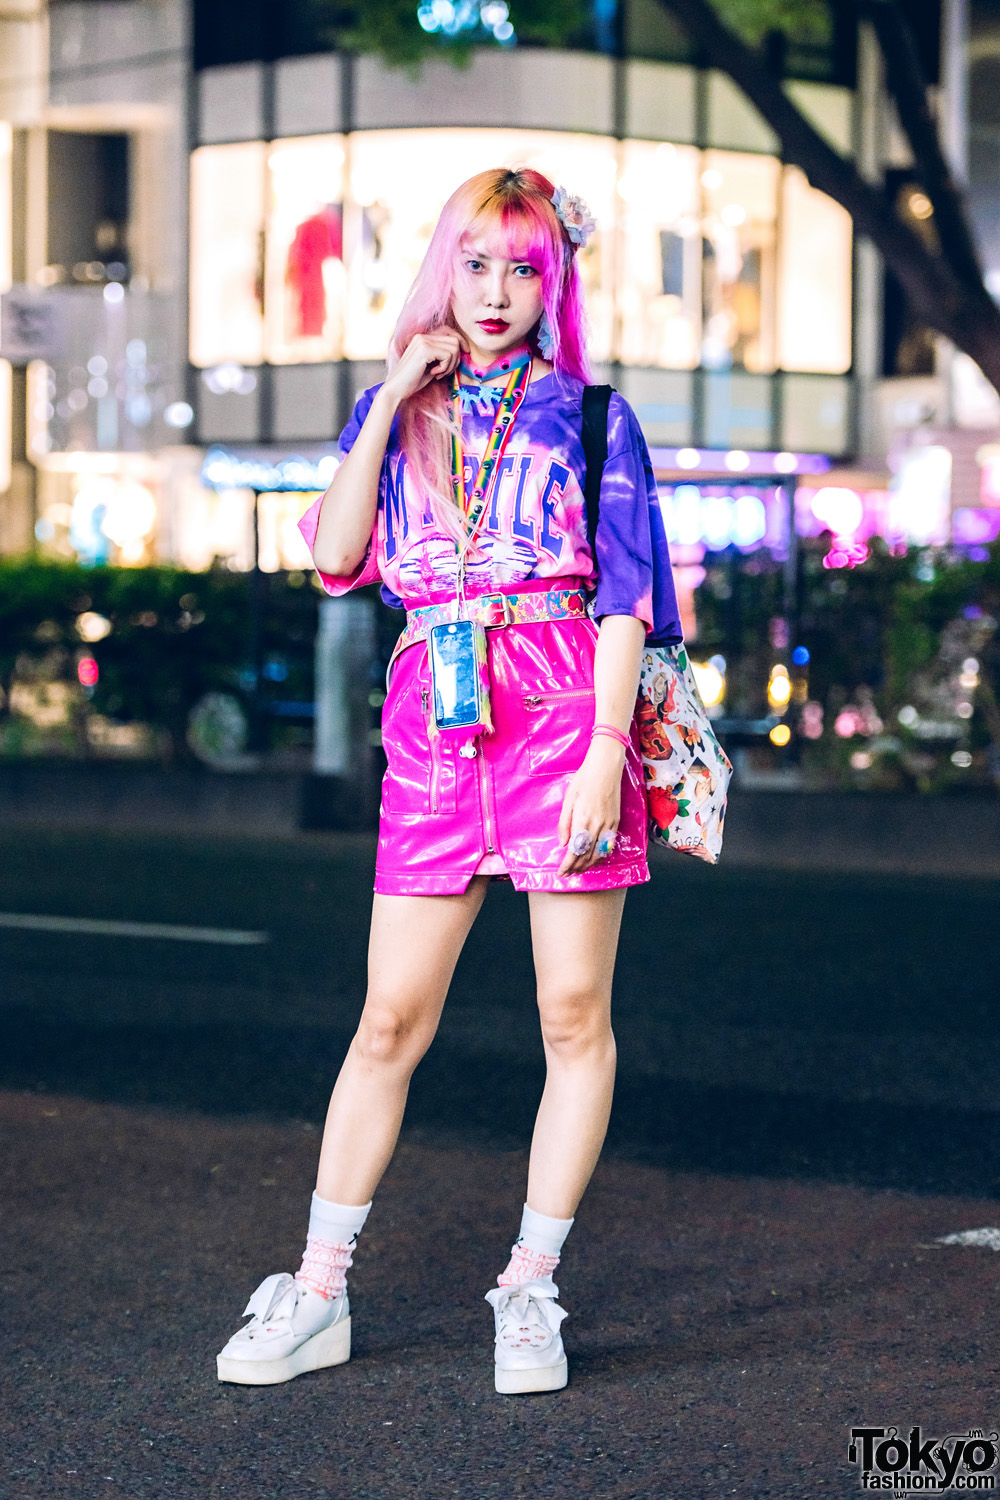 49e3e7a76 Fashion Designer's Kawaii Street Style w/ Ombre Hair, Vintage Tie Dye  Shirt, 80s90s00s Patent Leather Skirt, Cutout Bow Shoes, & Colorful  Accessories